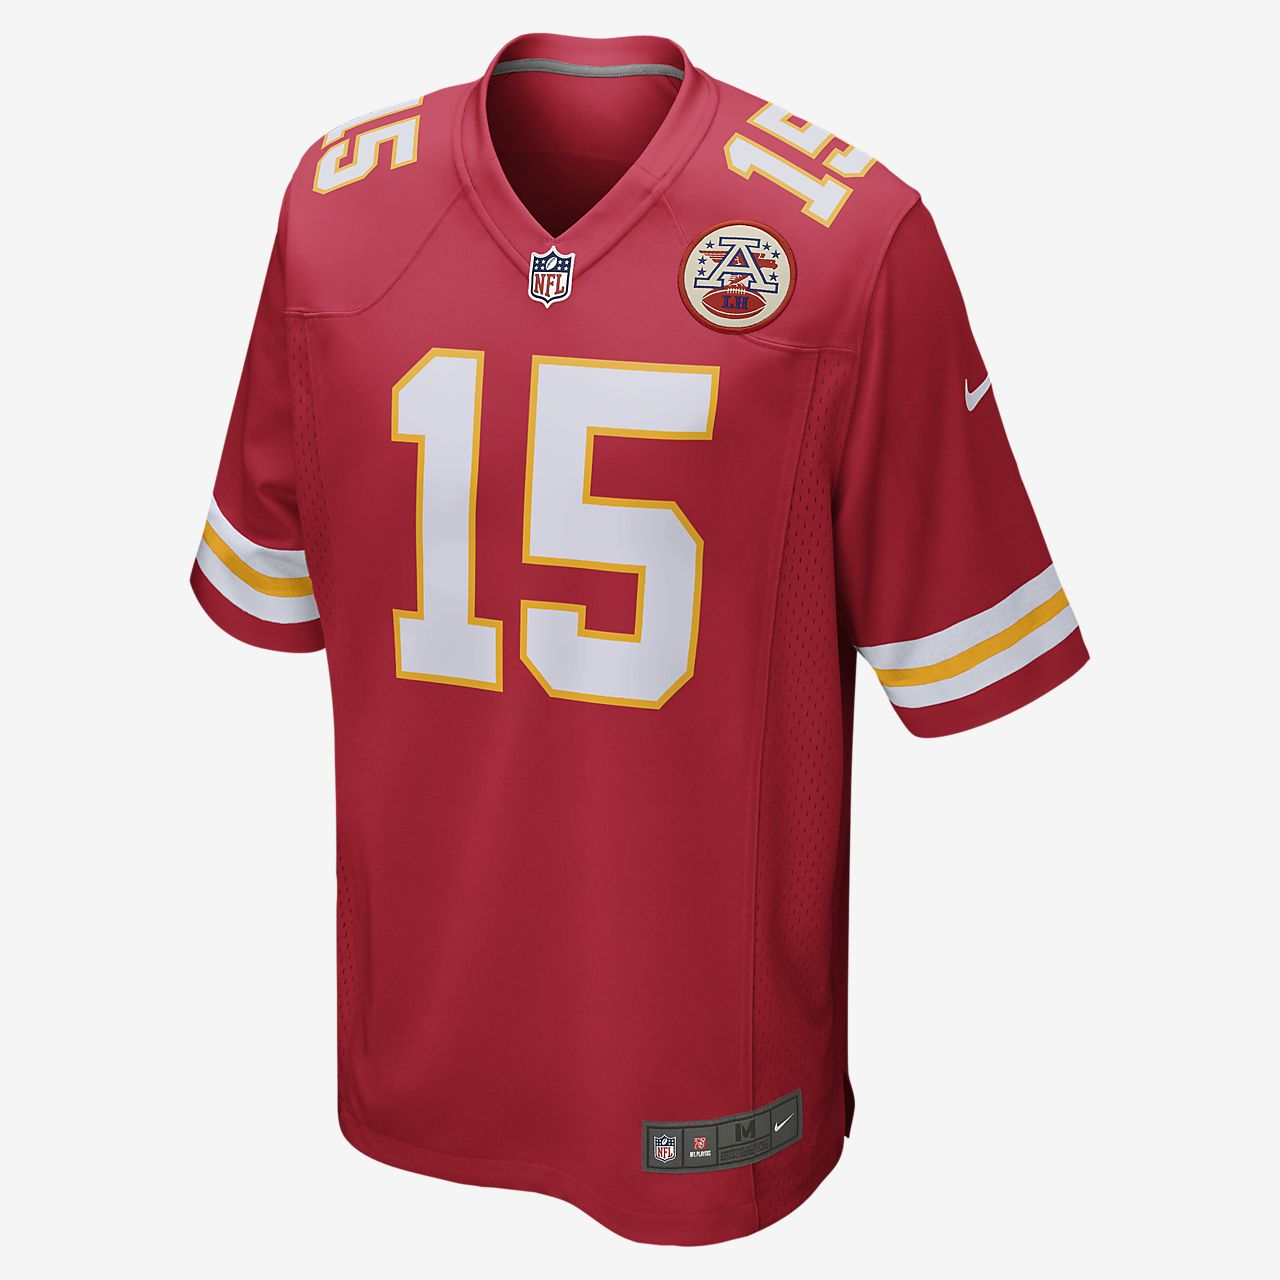 new arrival 2c44b 8b712 NFL Kansas City Chiefs (Patrick Mahomes) Men's Game Football Jersey